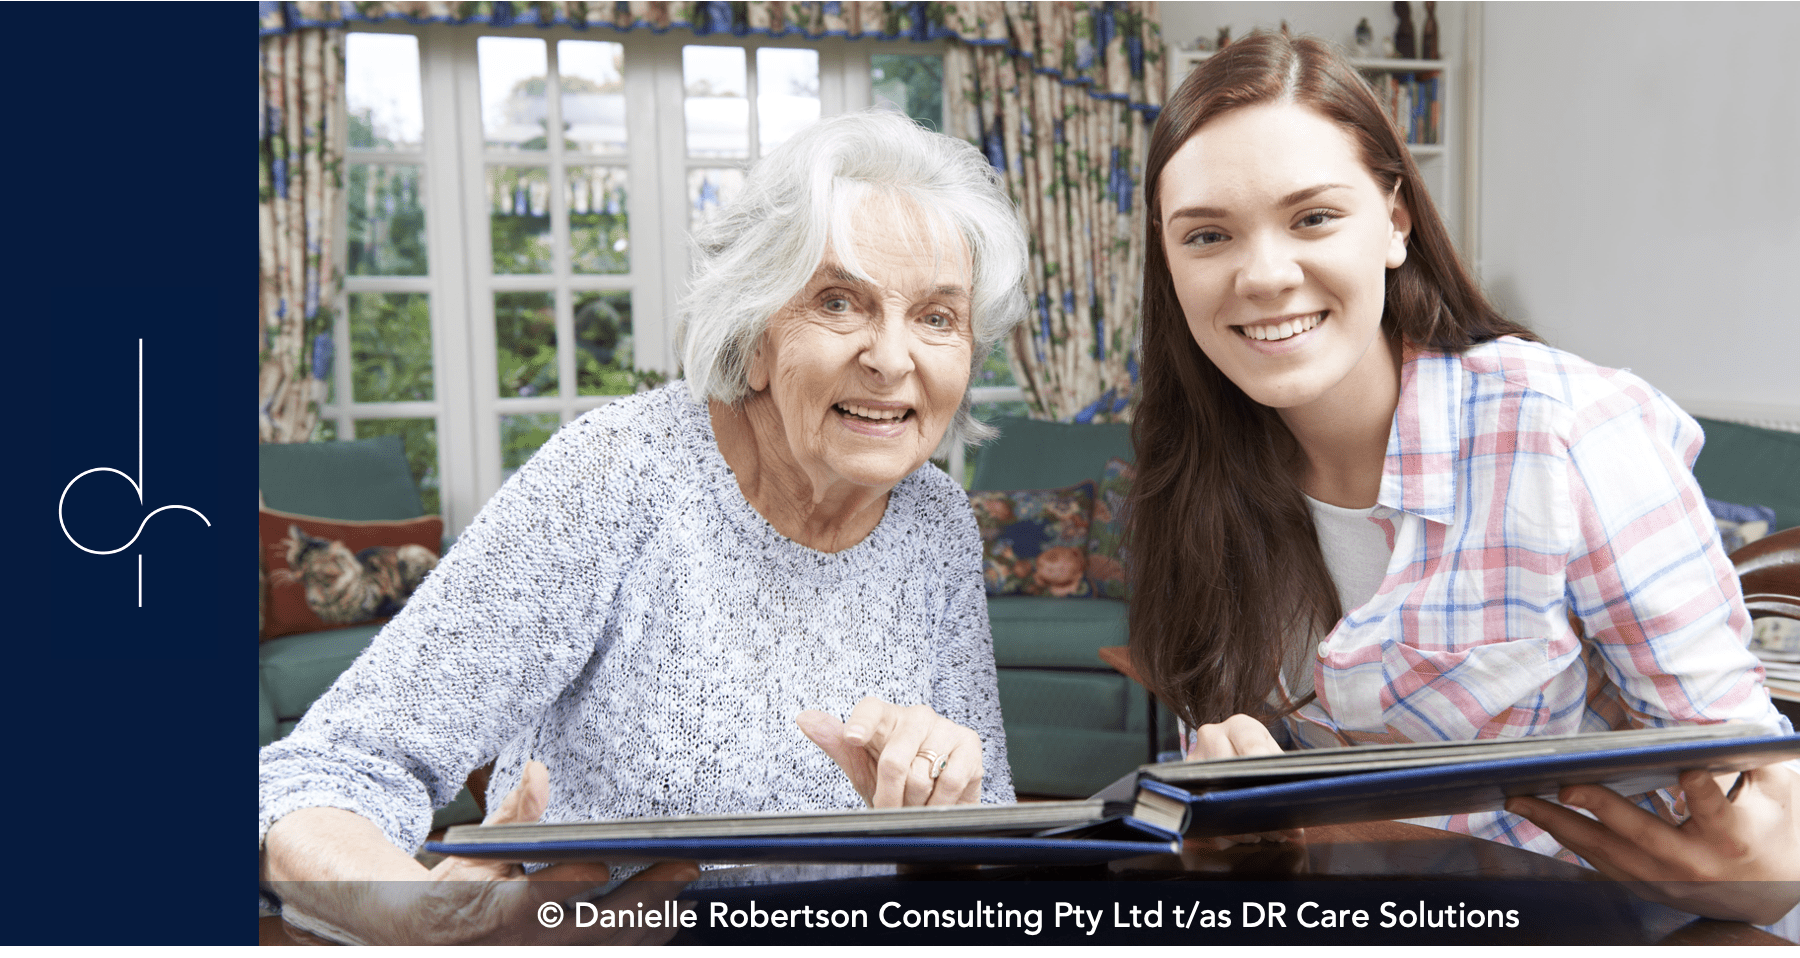 Residential Care vs Home Care - What's Best For You?